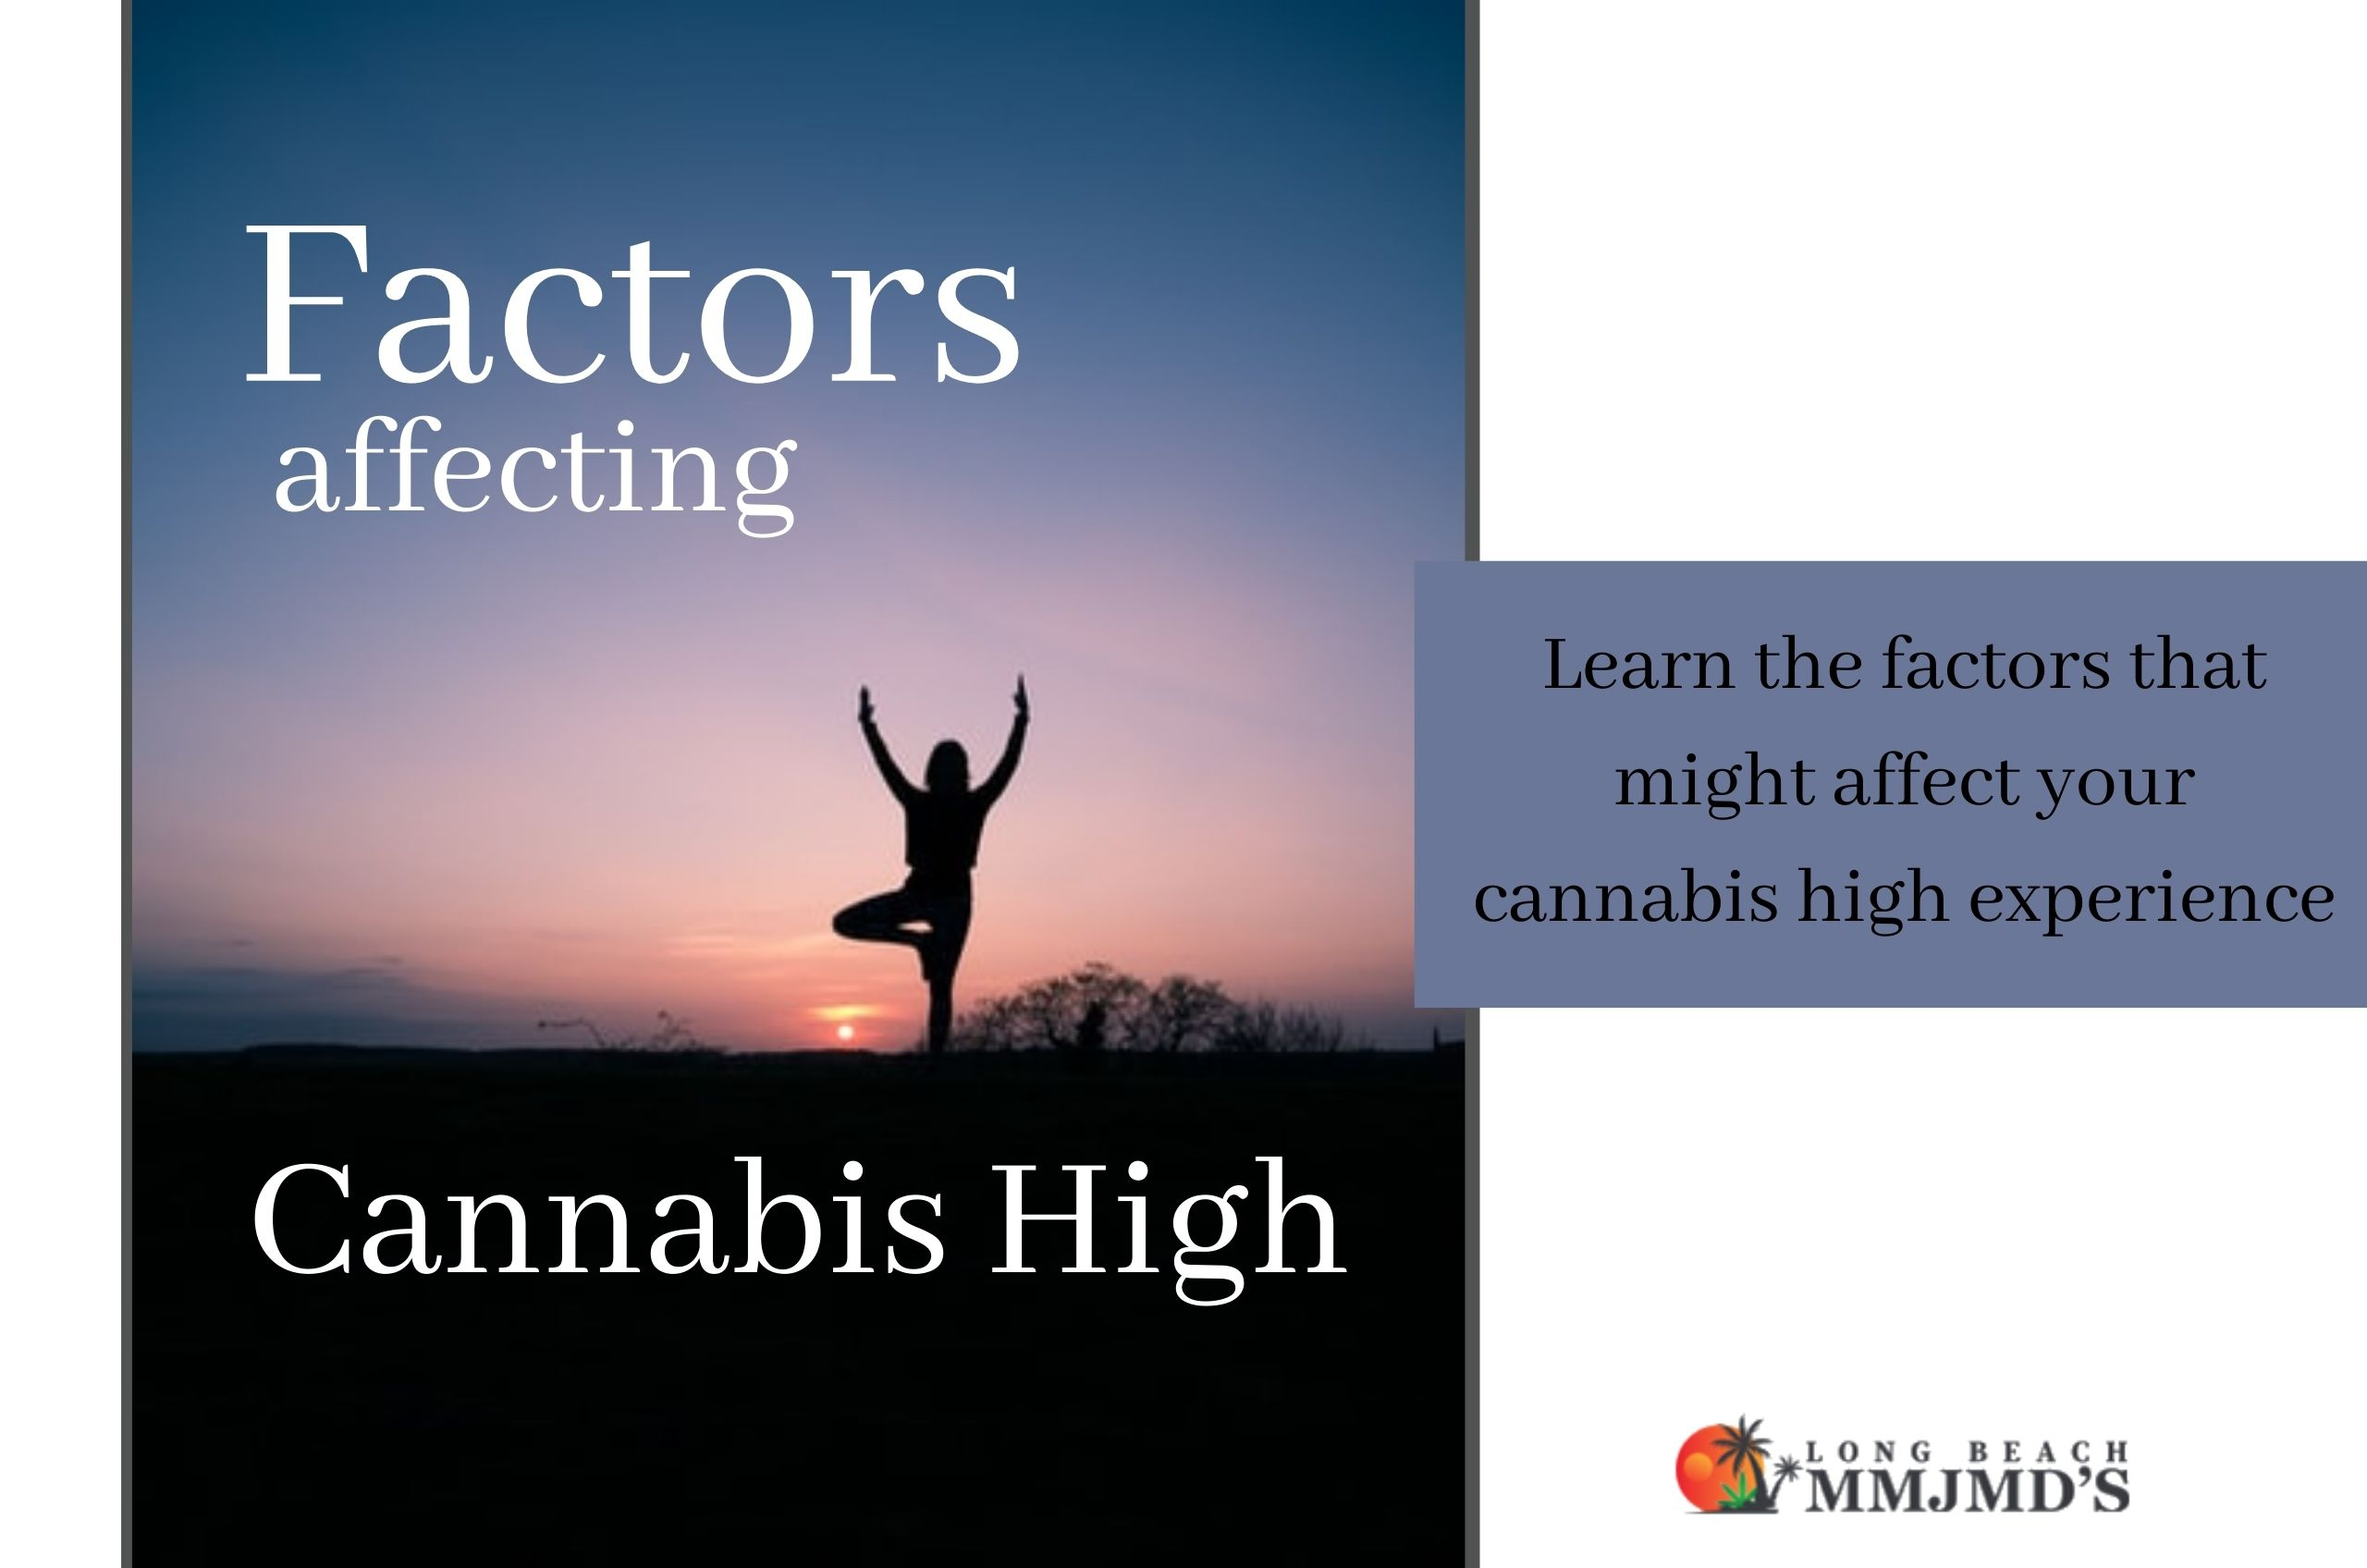 Factors That Can Affect Your Cannabis High